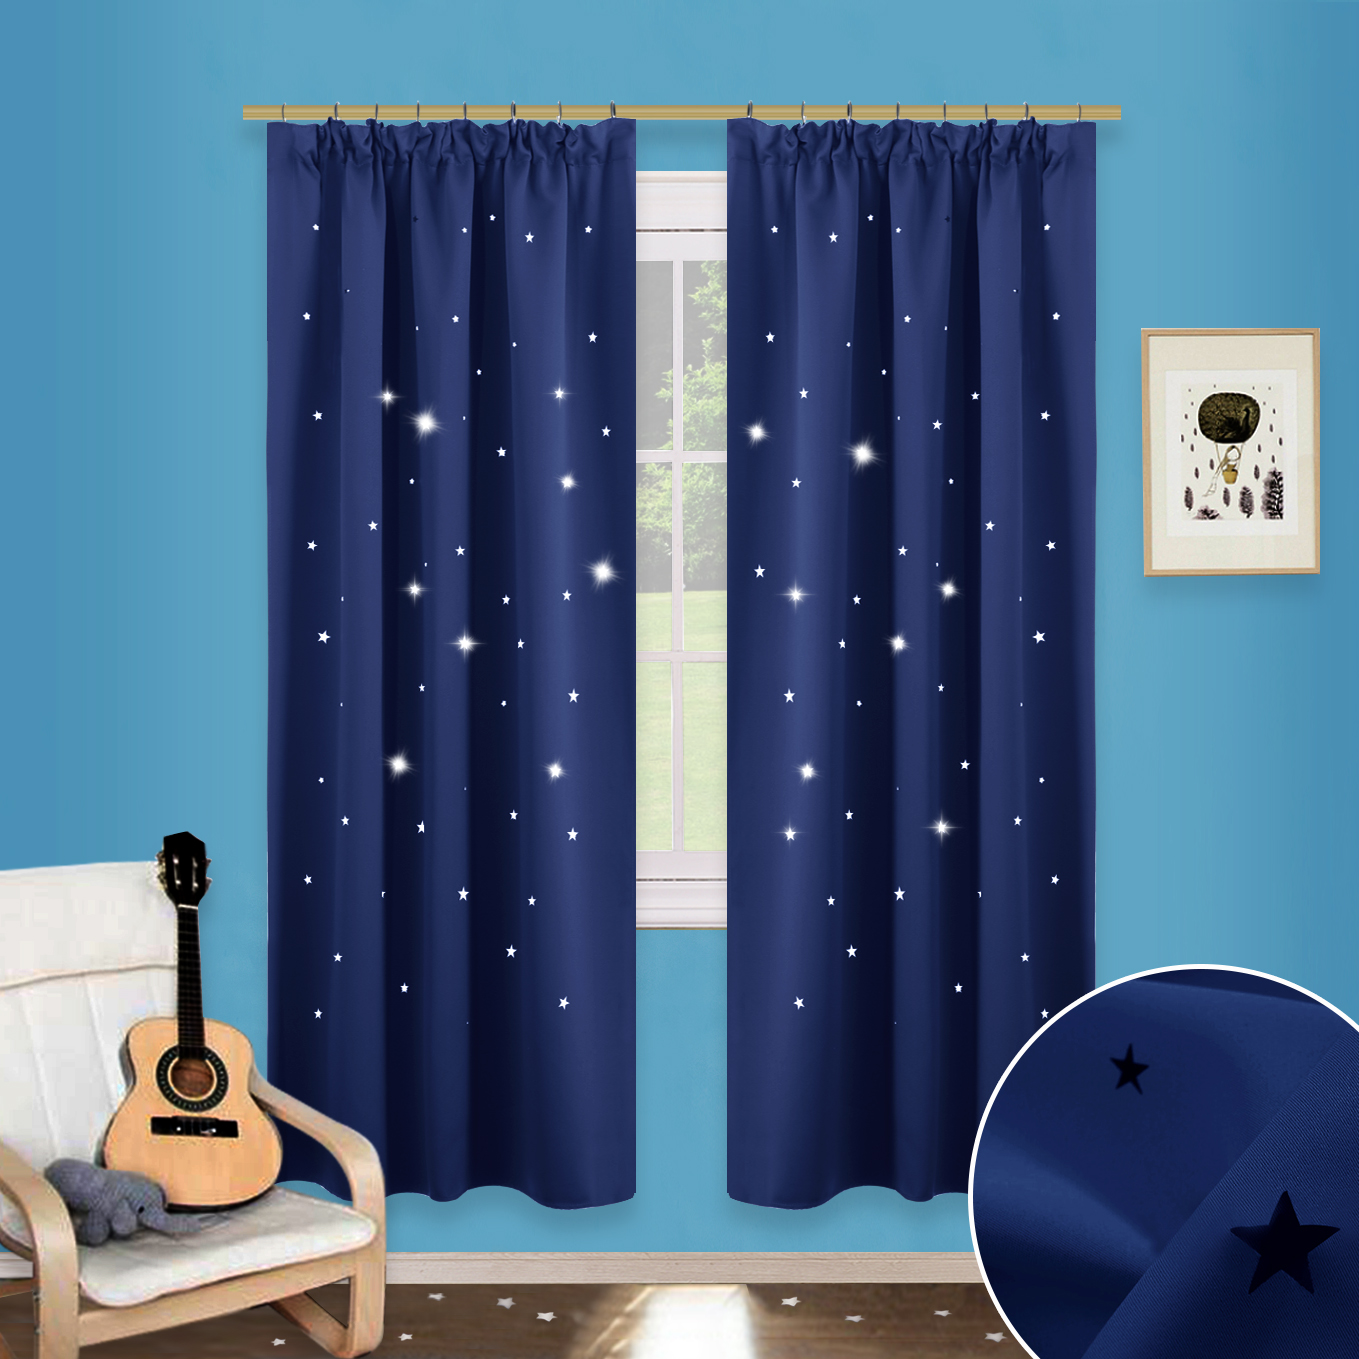 Ready Made Thermal Curtains Hollow Star Pencil Pleat Curtains Thermal Insulated Ready Made Blackout Cutting Star Curtains Starry Sky Drapes For Bedroom Nursery Kids 2